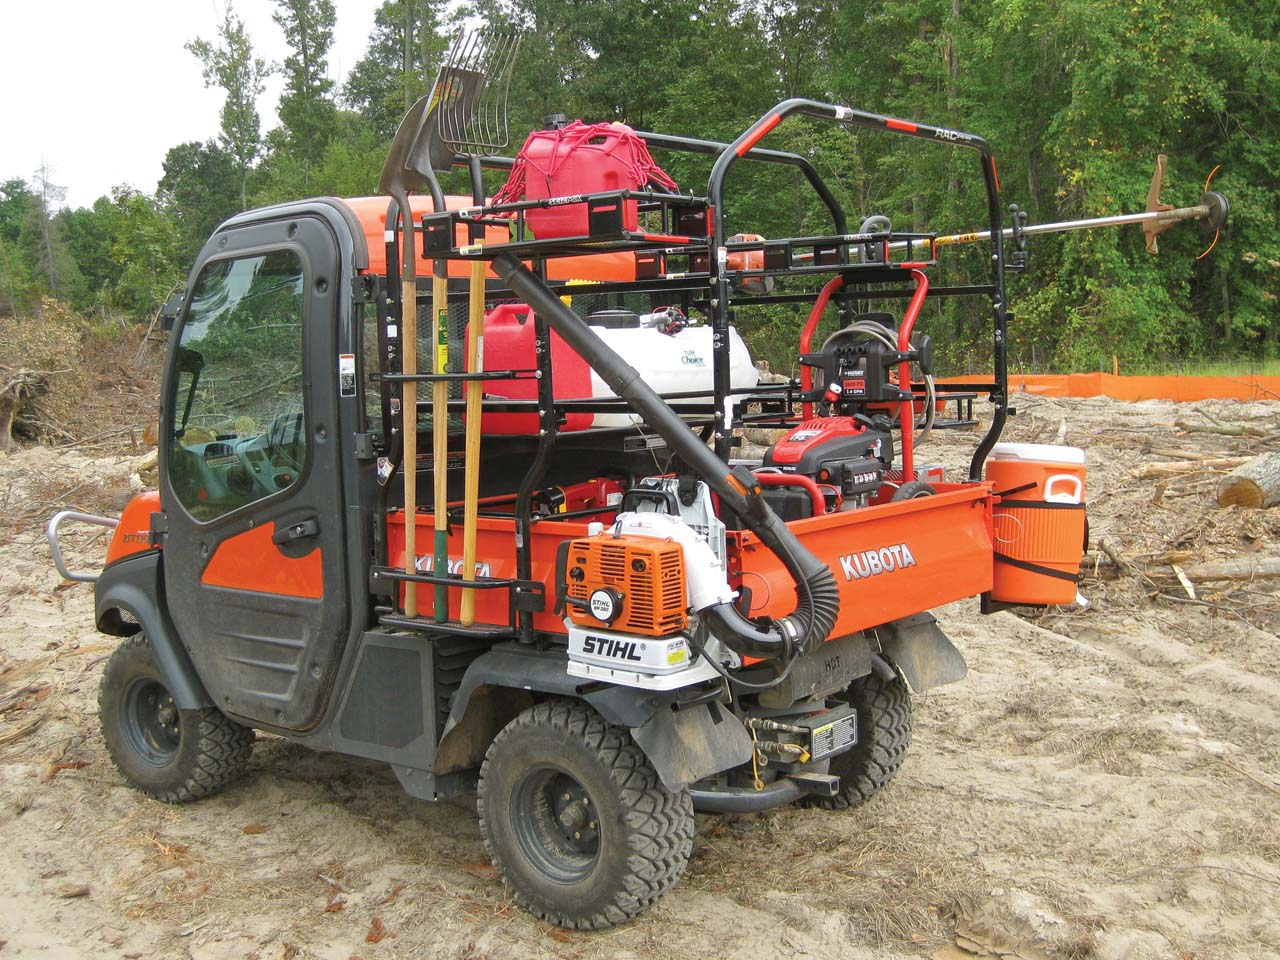 Kubota rtv photo - 9